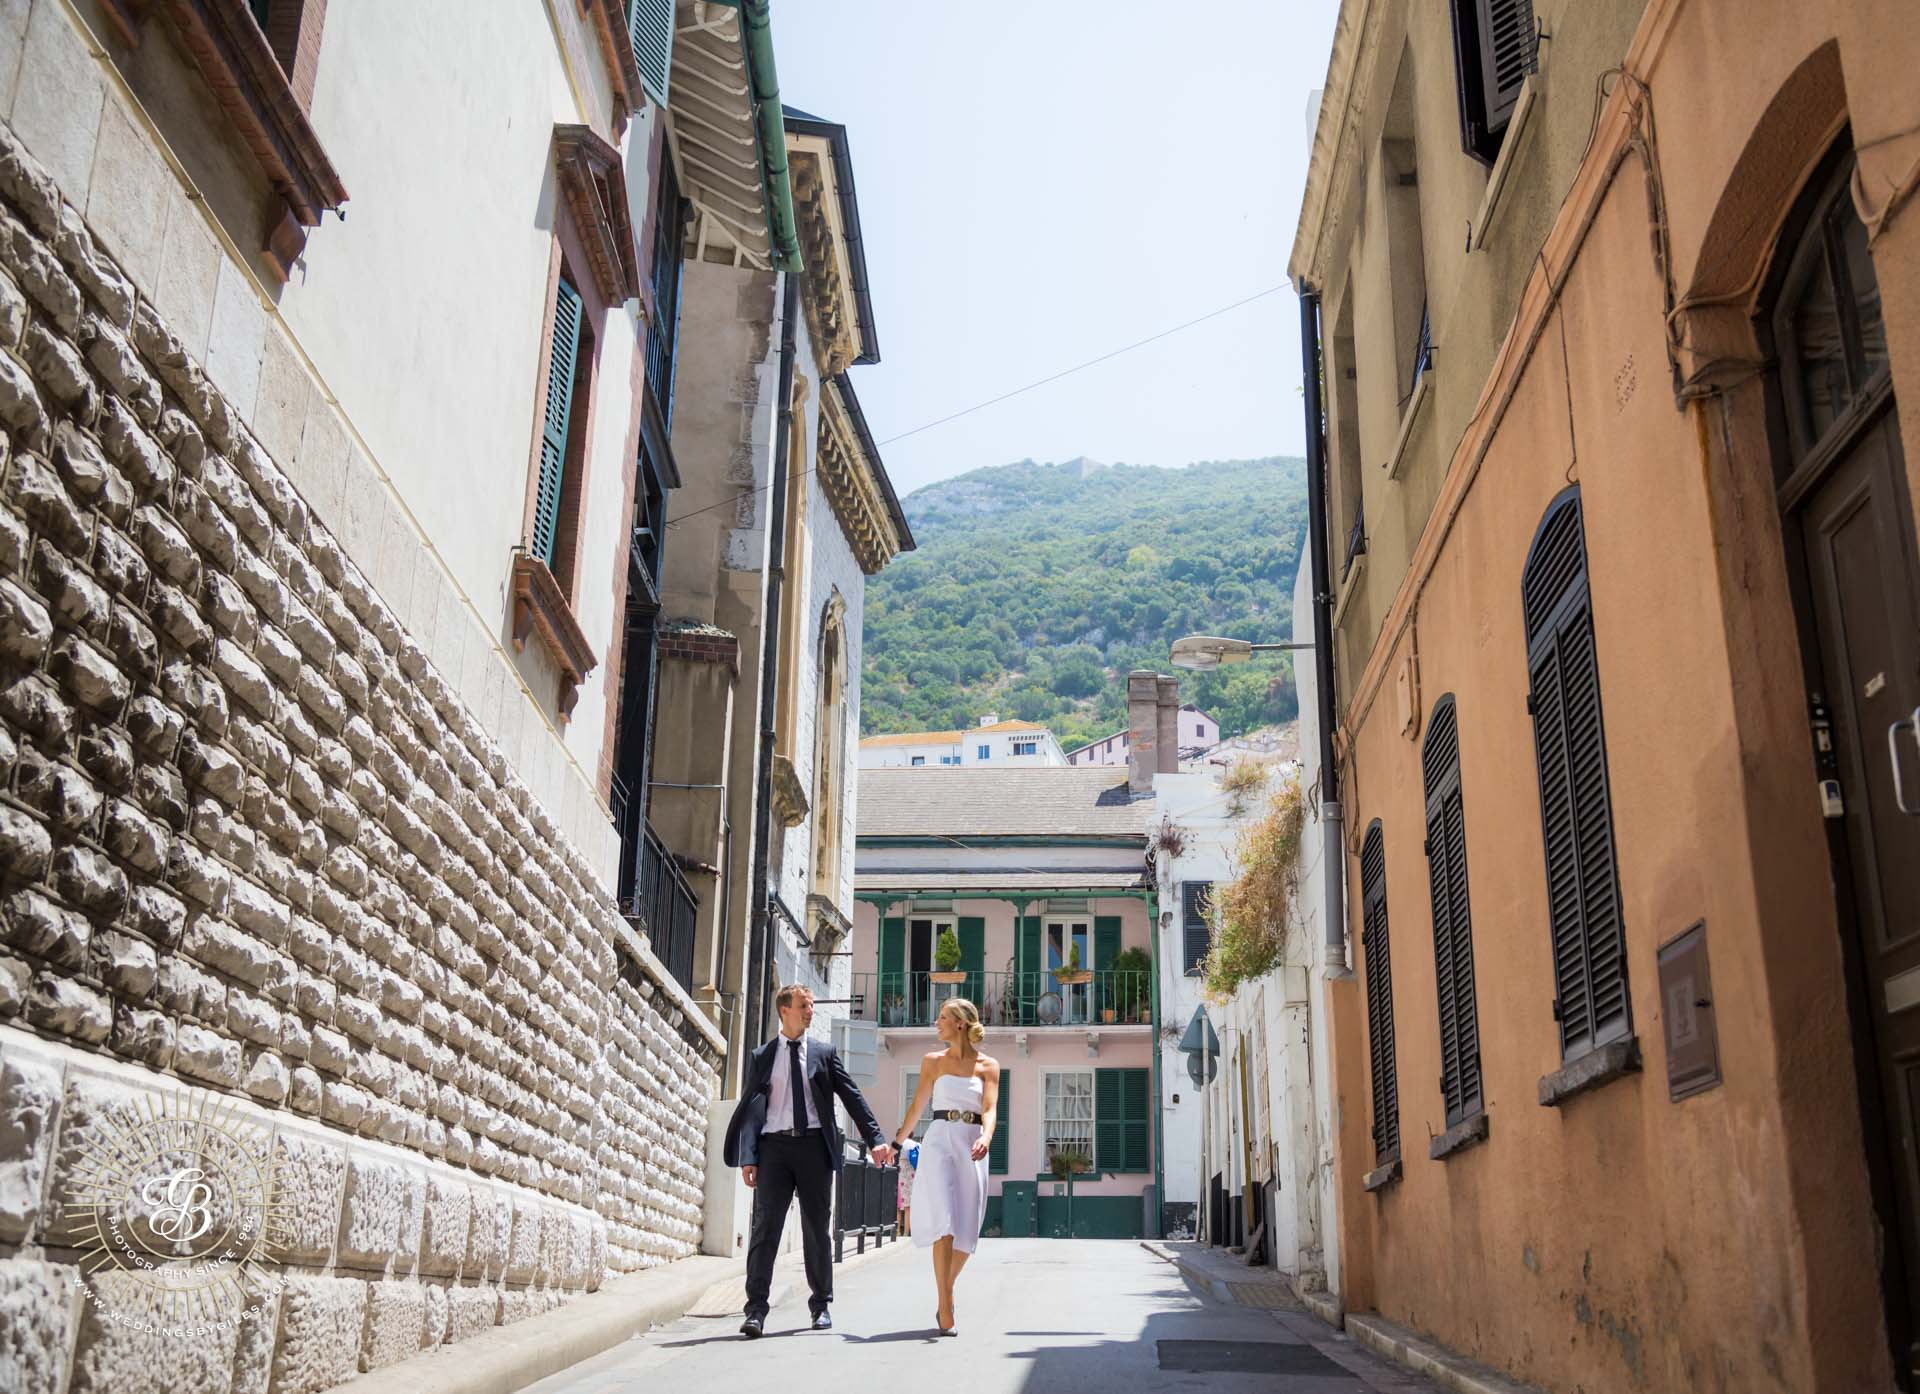 wedding photo shoot in only town Gibraltar